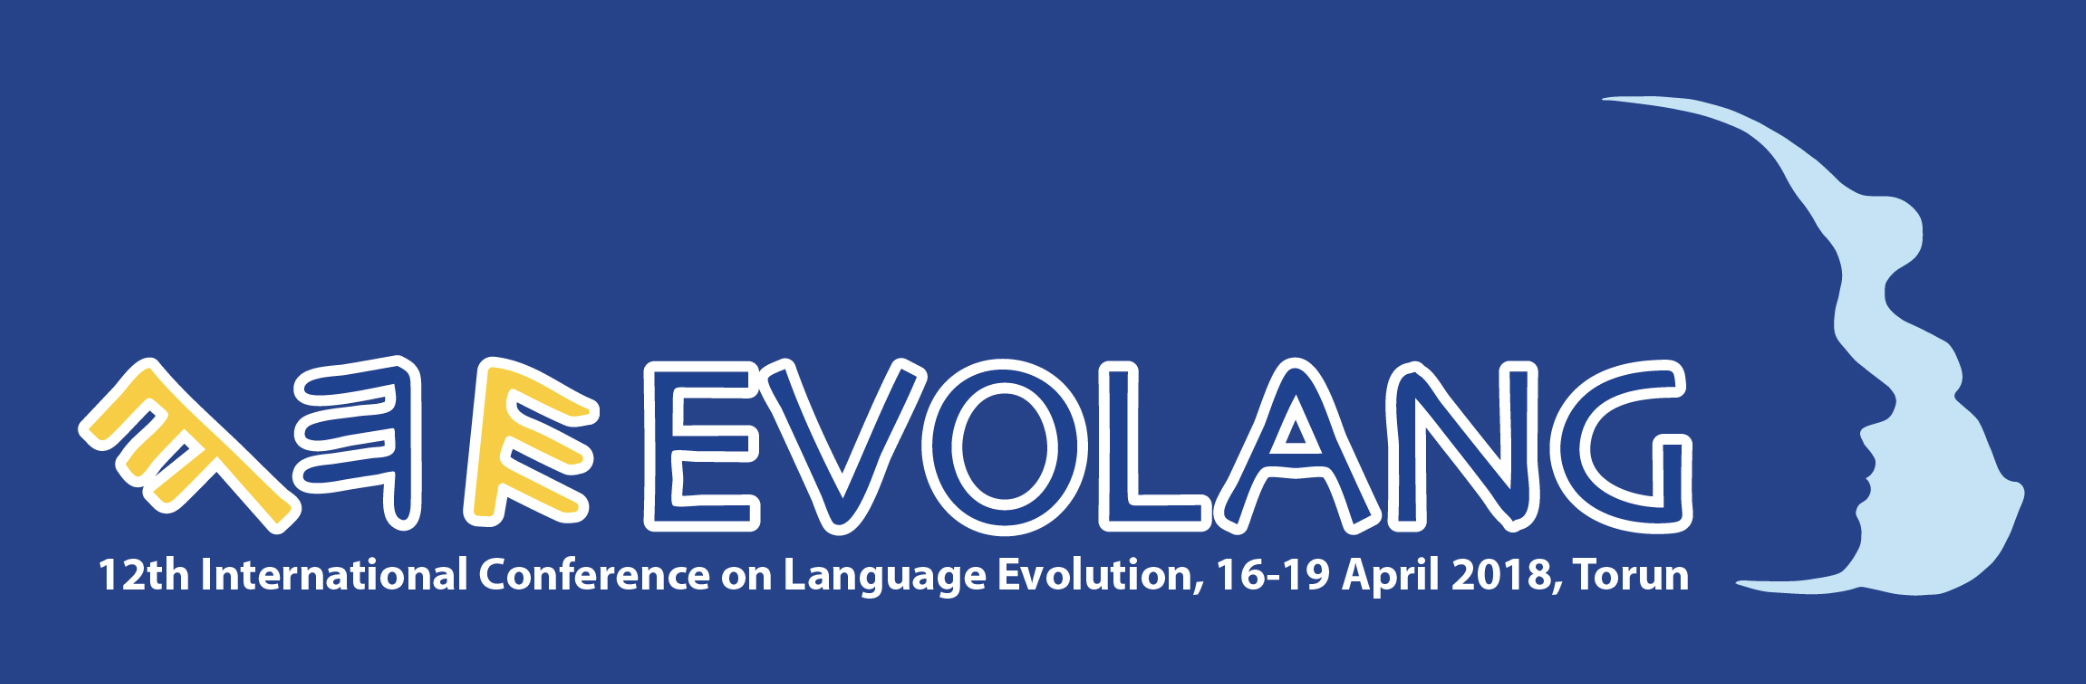 Evolang conference logo